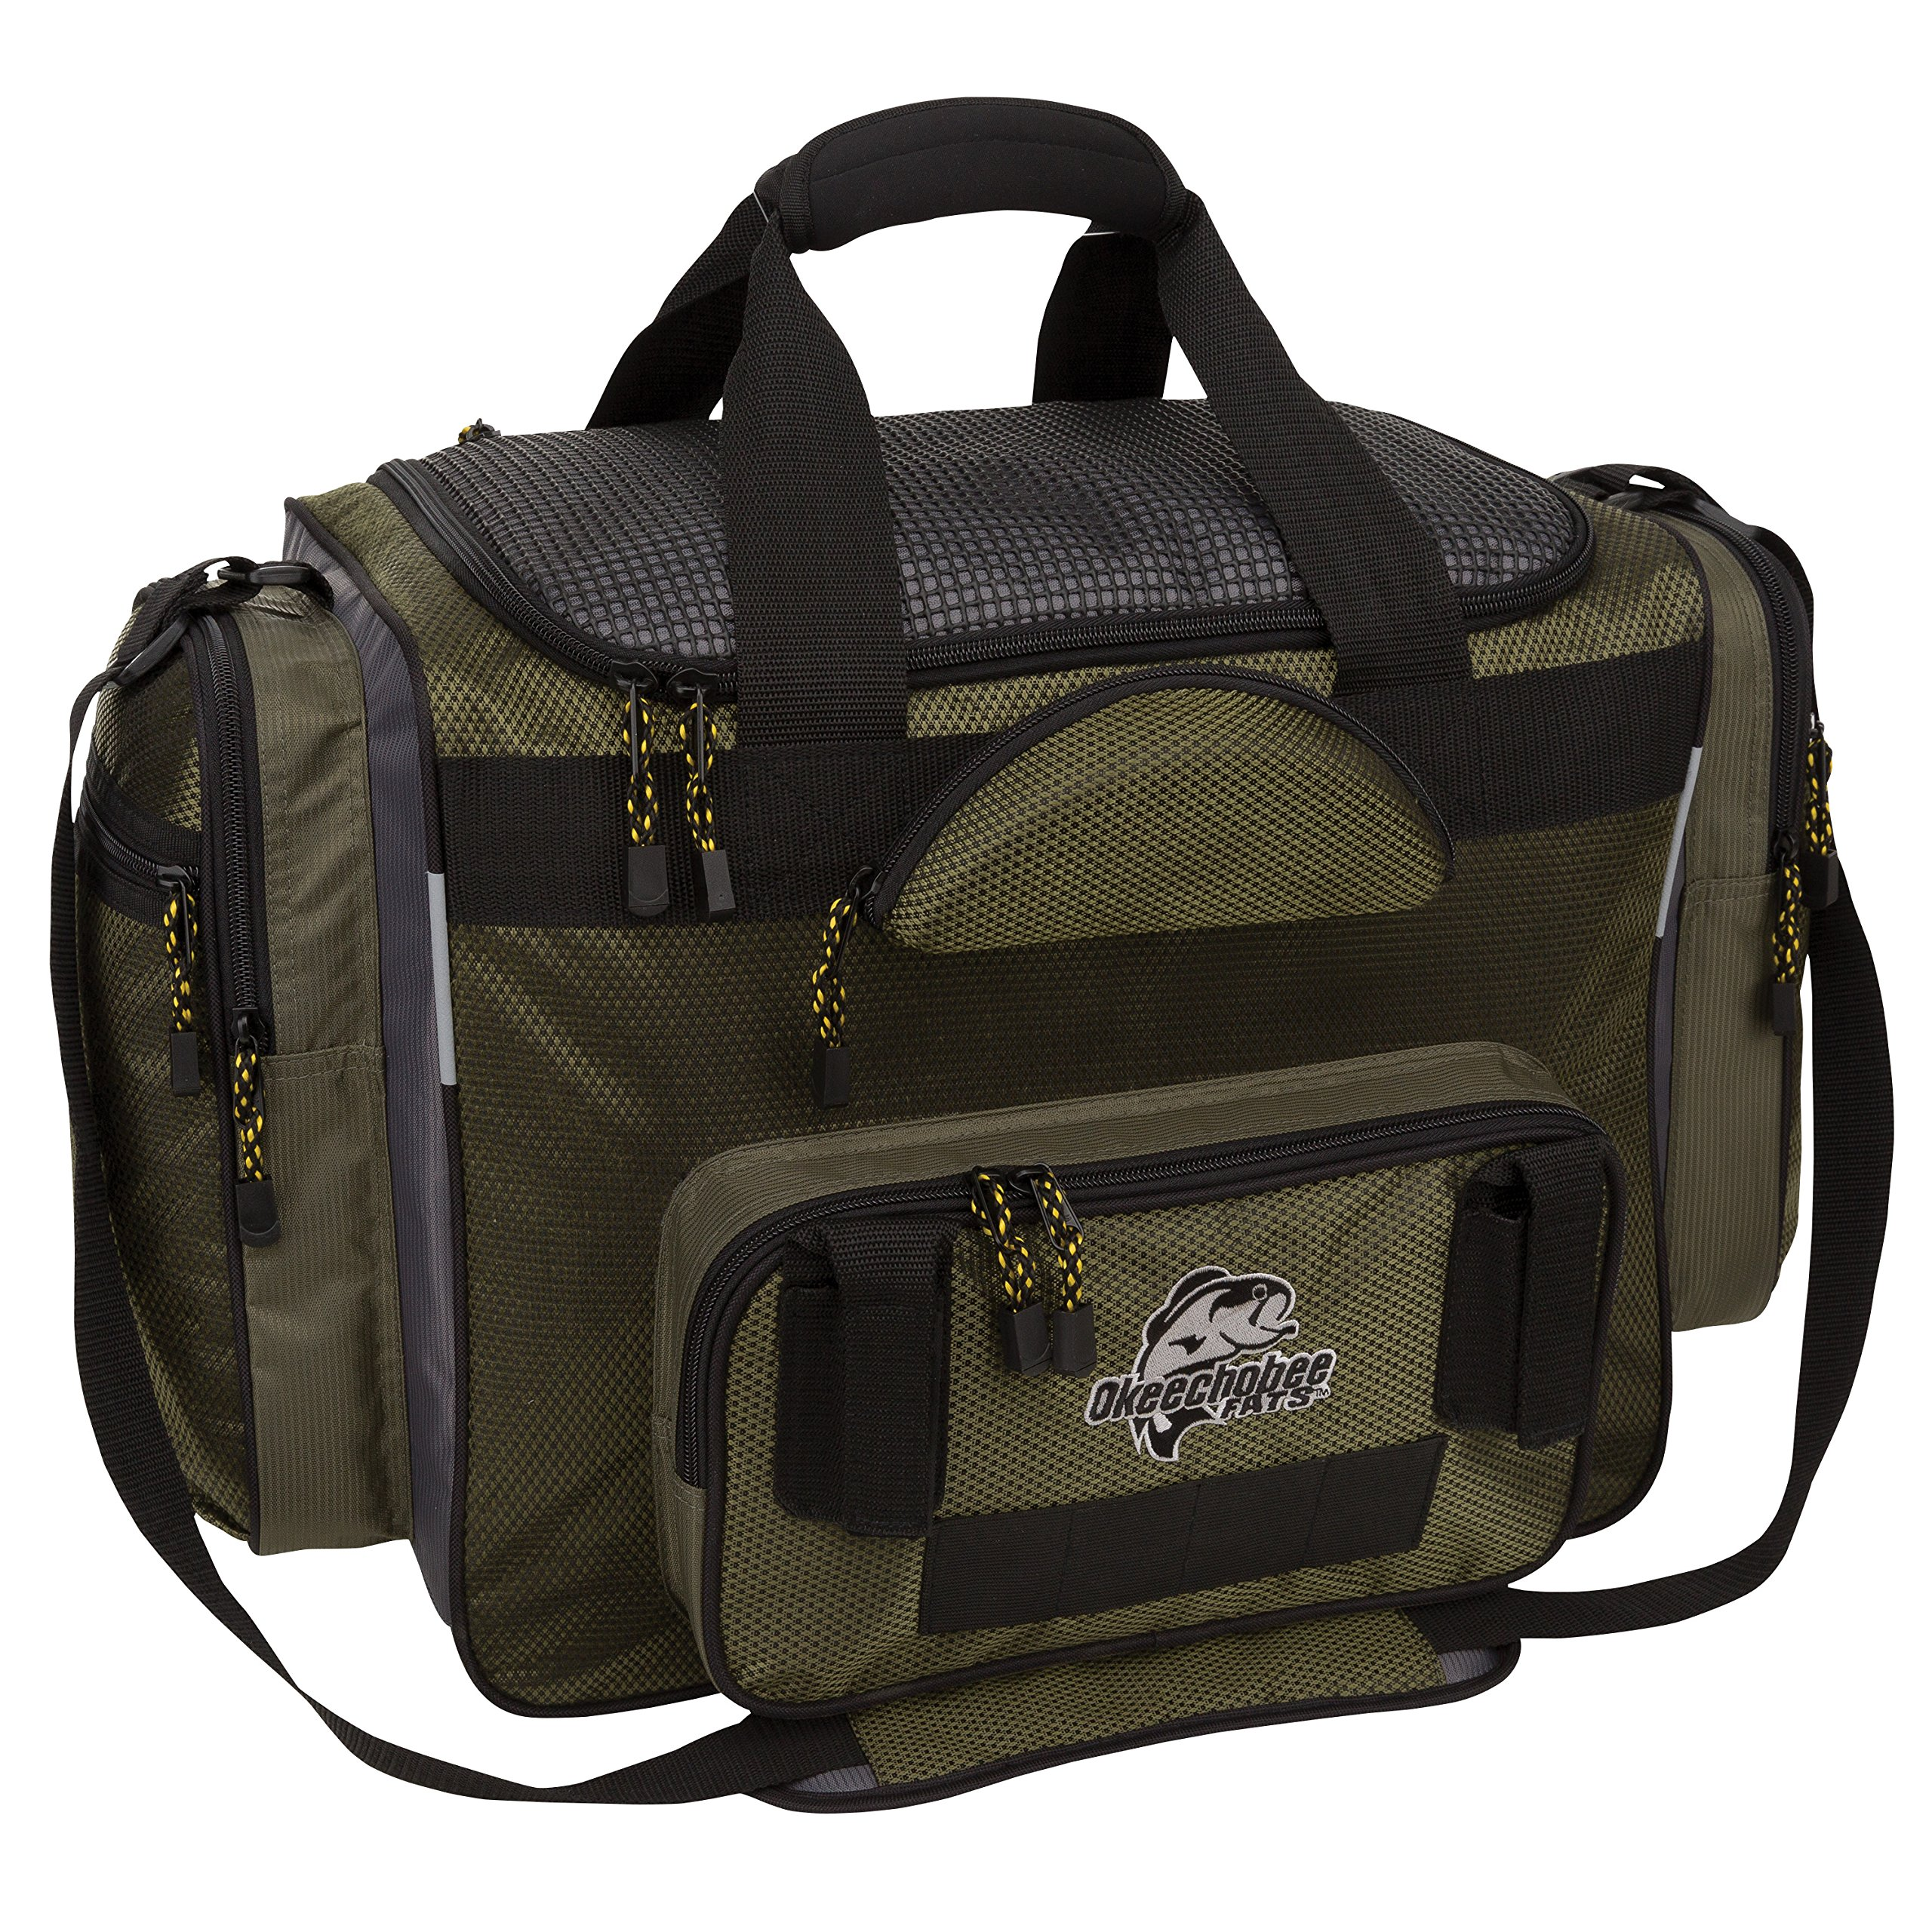 OkeeChobee Fats T1200 Tackle Bag by OkeeChobee Fats